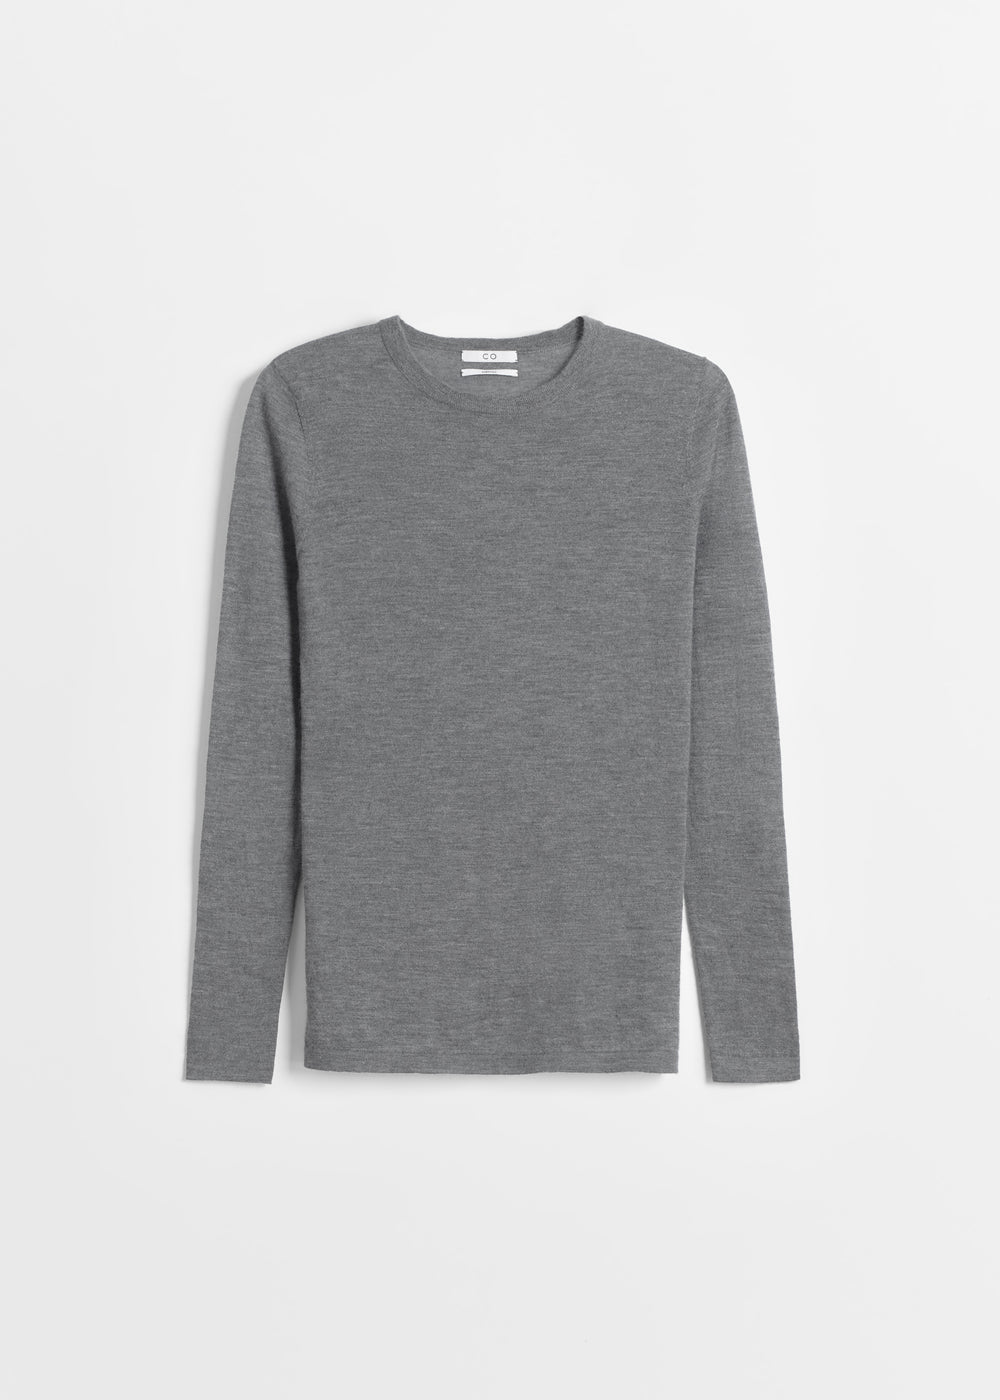 Long Sleeve Crew Neck in Fine Cashmere - Black in Grey by Co Collections